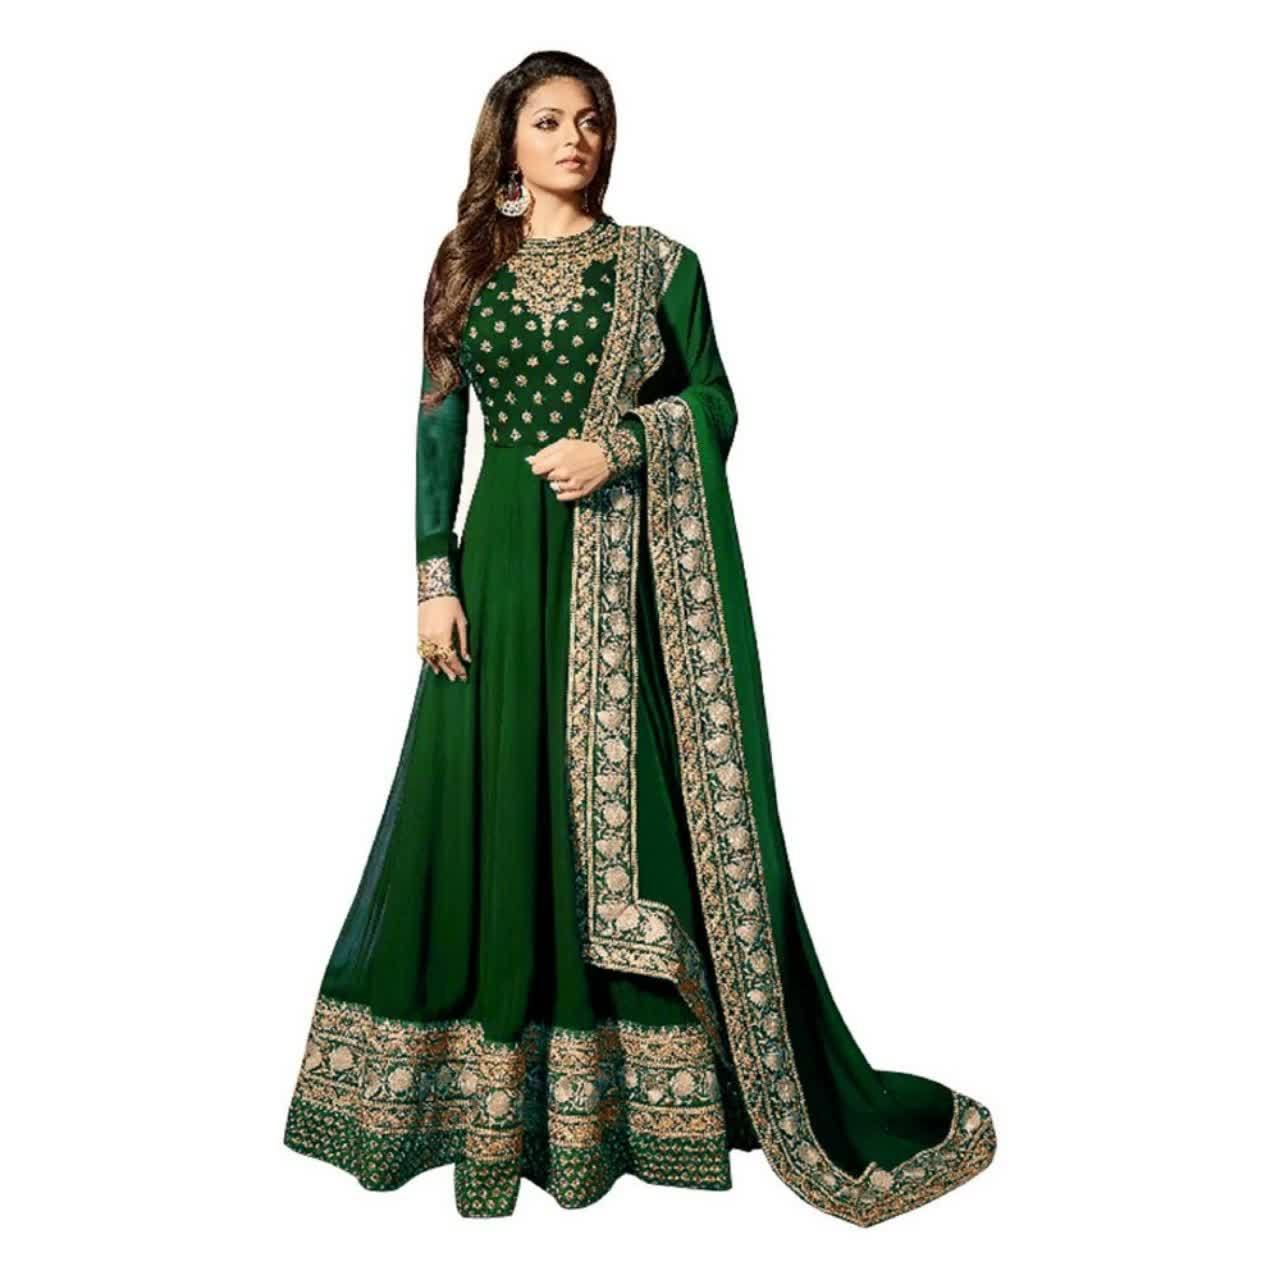 Ethnic Garment Party wear Indian latest salwar kameez suit